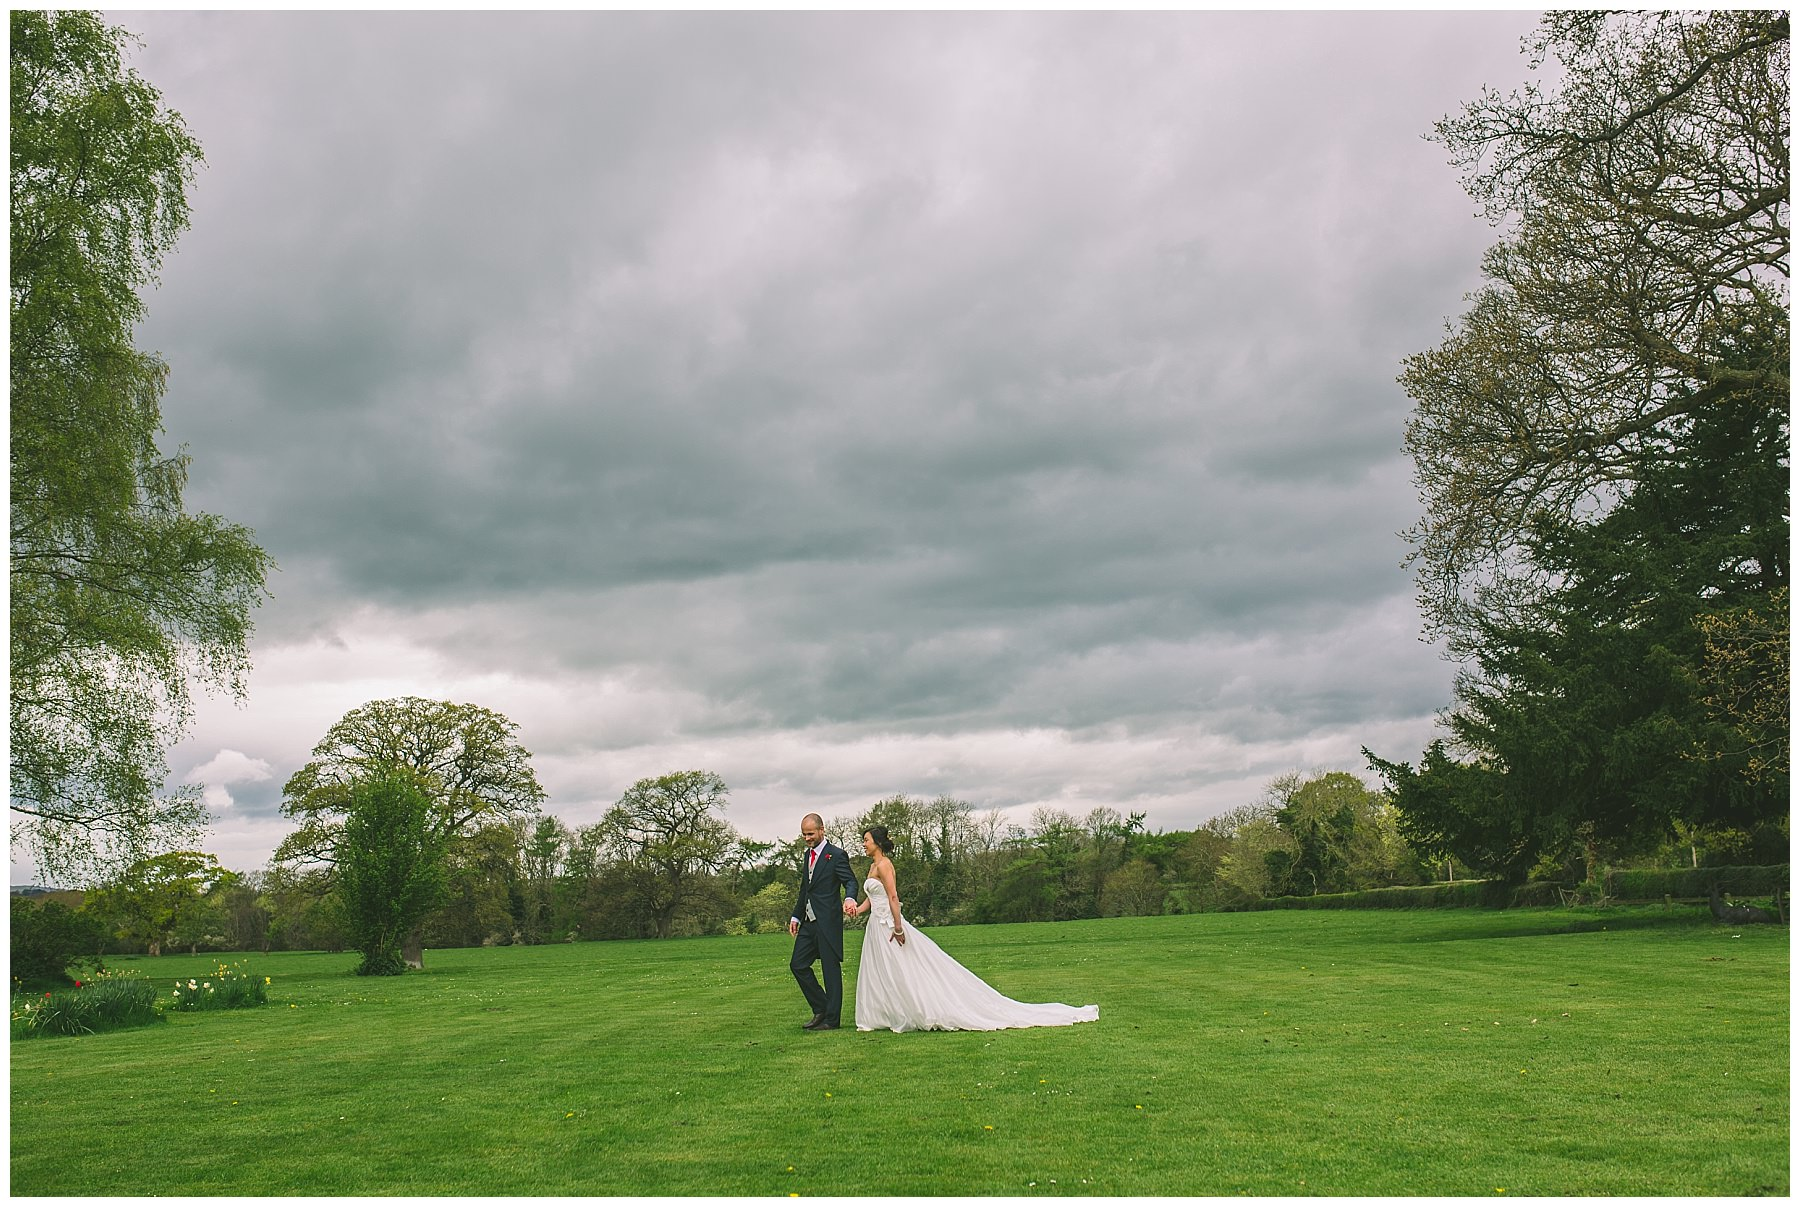 Newlyweds take a stoll over the lawns at Pentre Mawr